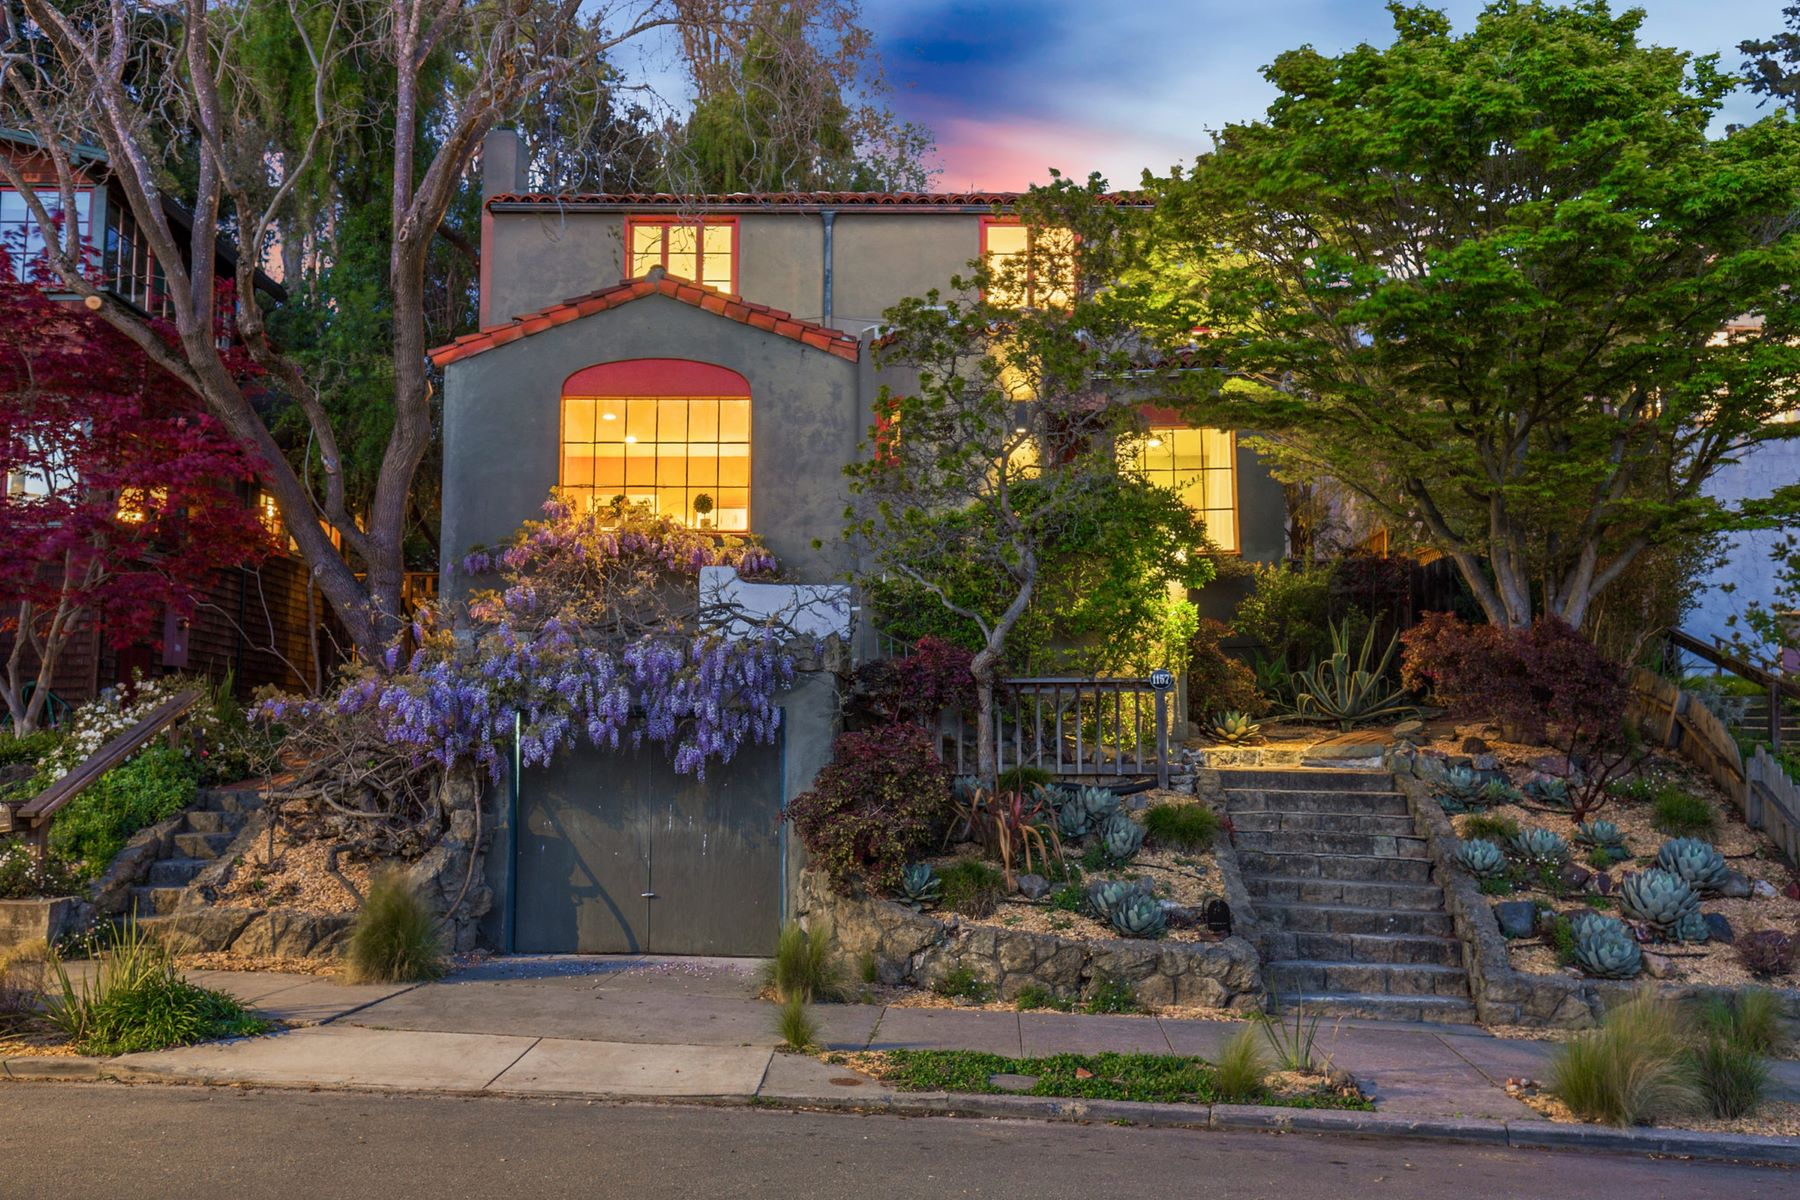 Property for Sale at Enchanting North Berkeley Home 1157 Oxford Street Berkeley, California 94707 United States